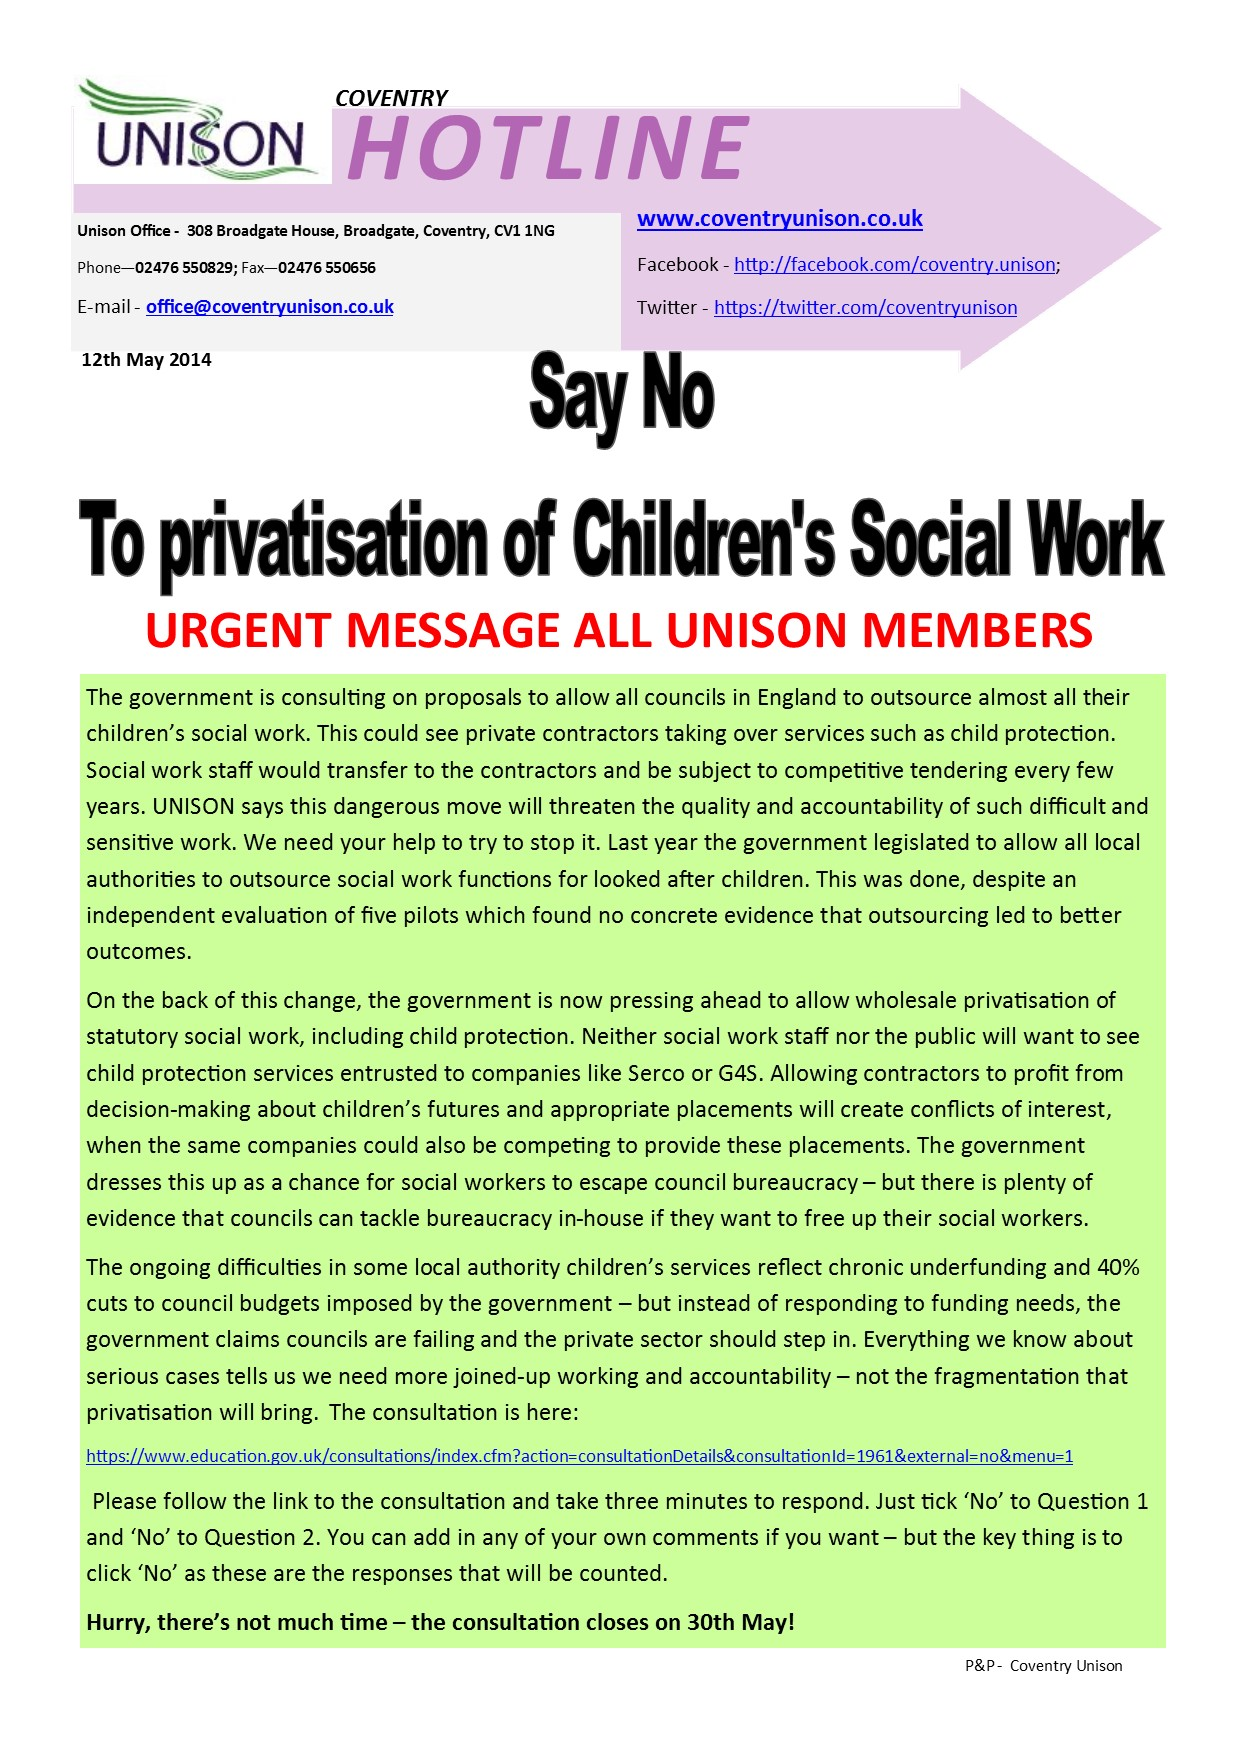 Hotline - No to Privatisation of Children's Social Work